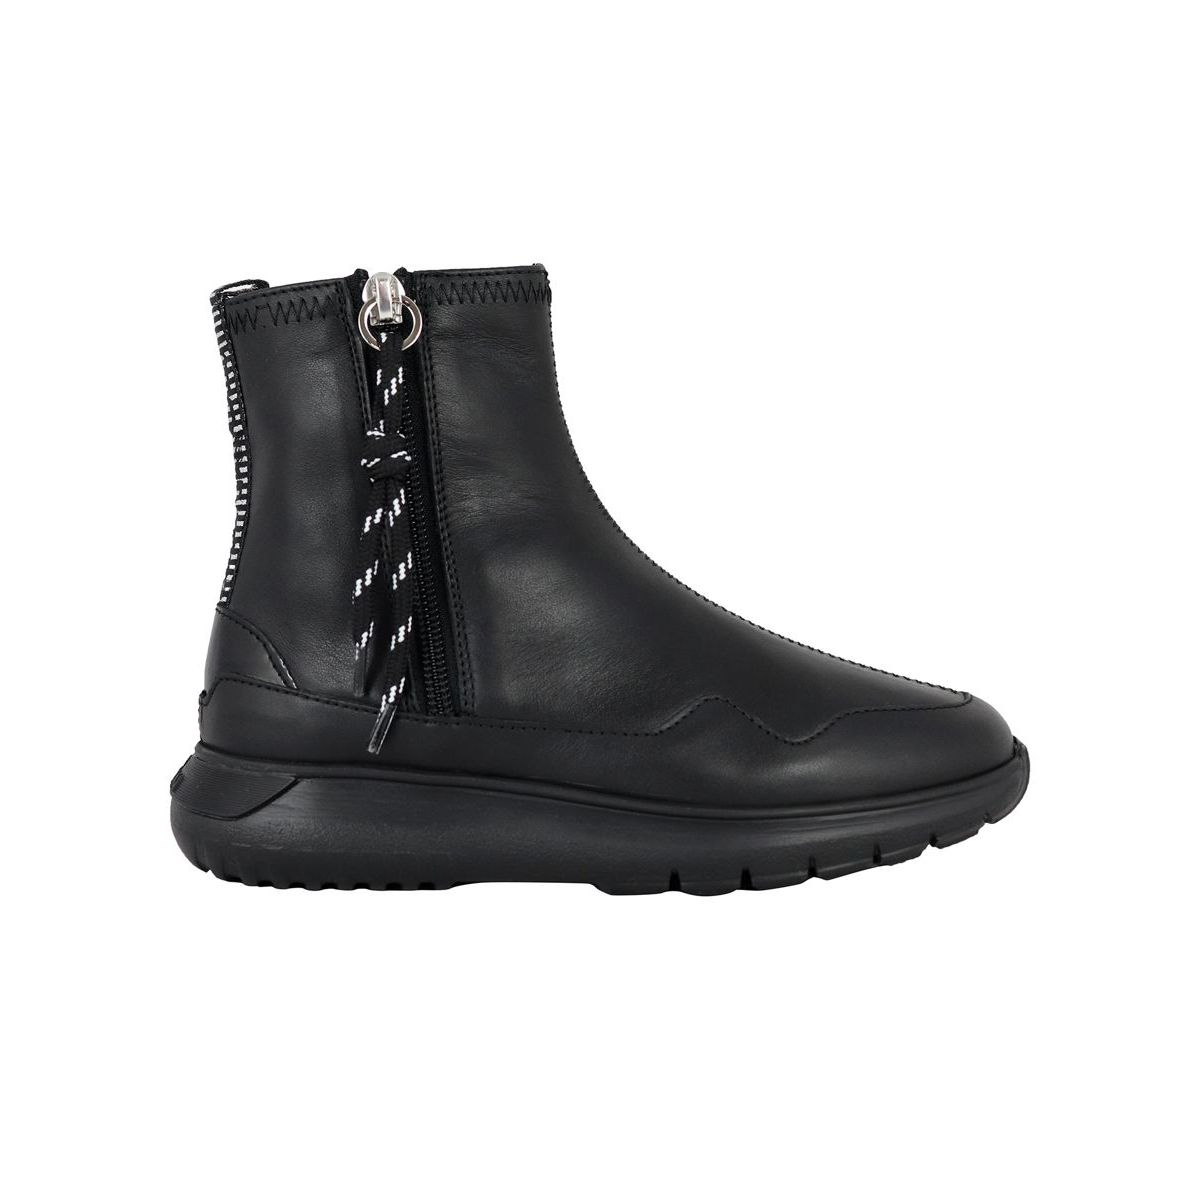 371 leather ankle boot with side zip Black Hogan